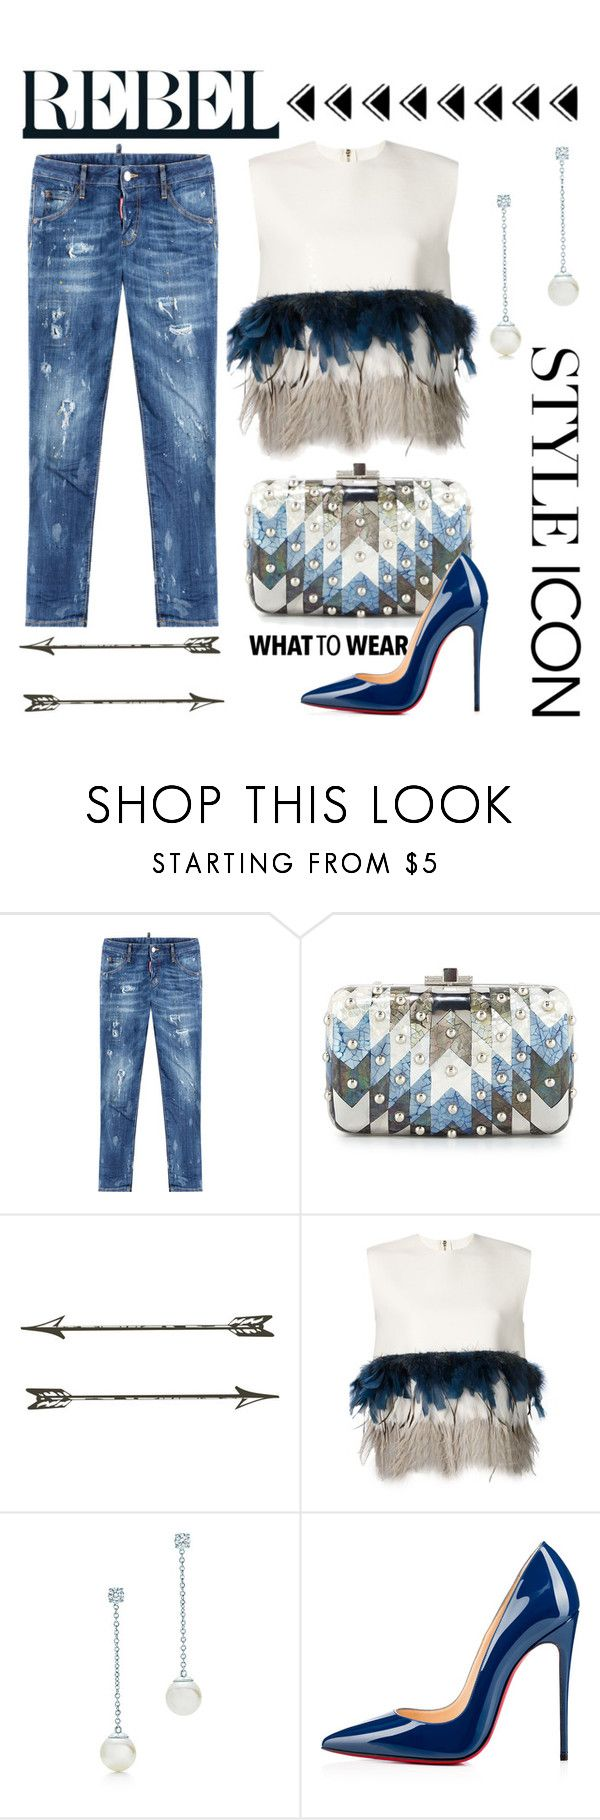 """""""Classy Rebel"""" by conch-lady ❤ liked on Polyvore featuring Dsquared2, Judith Leiber, Christian Louboutin, women's clothing, women's fashion, women, female, woman, misses and juniors"""